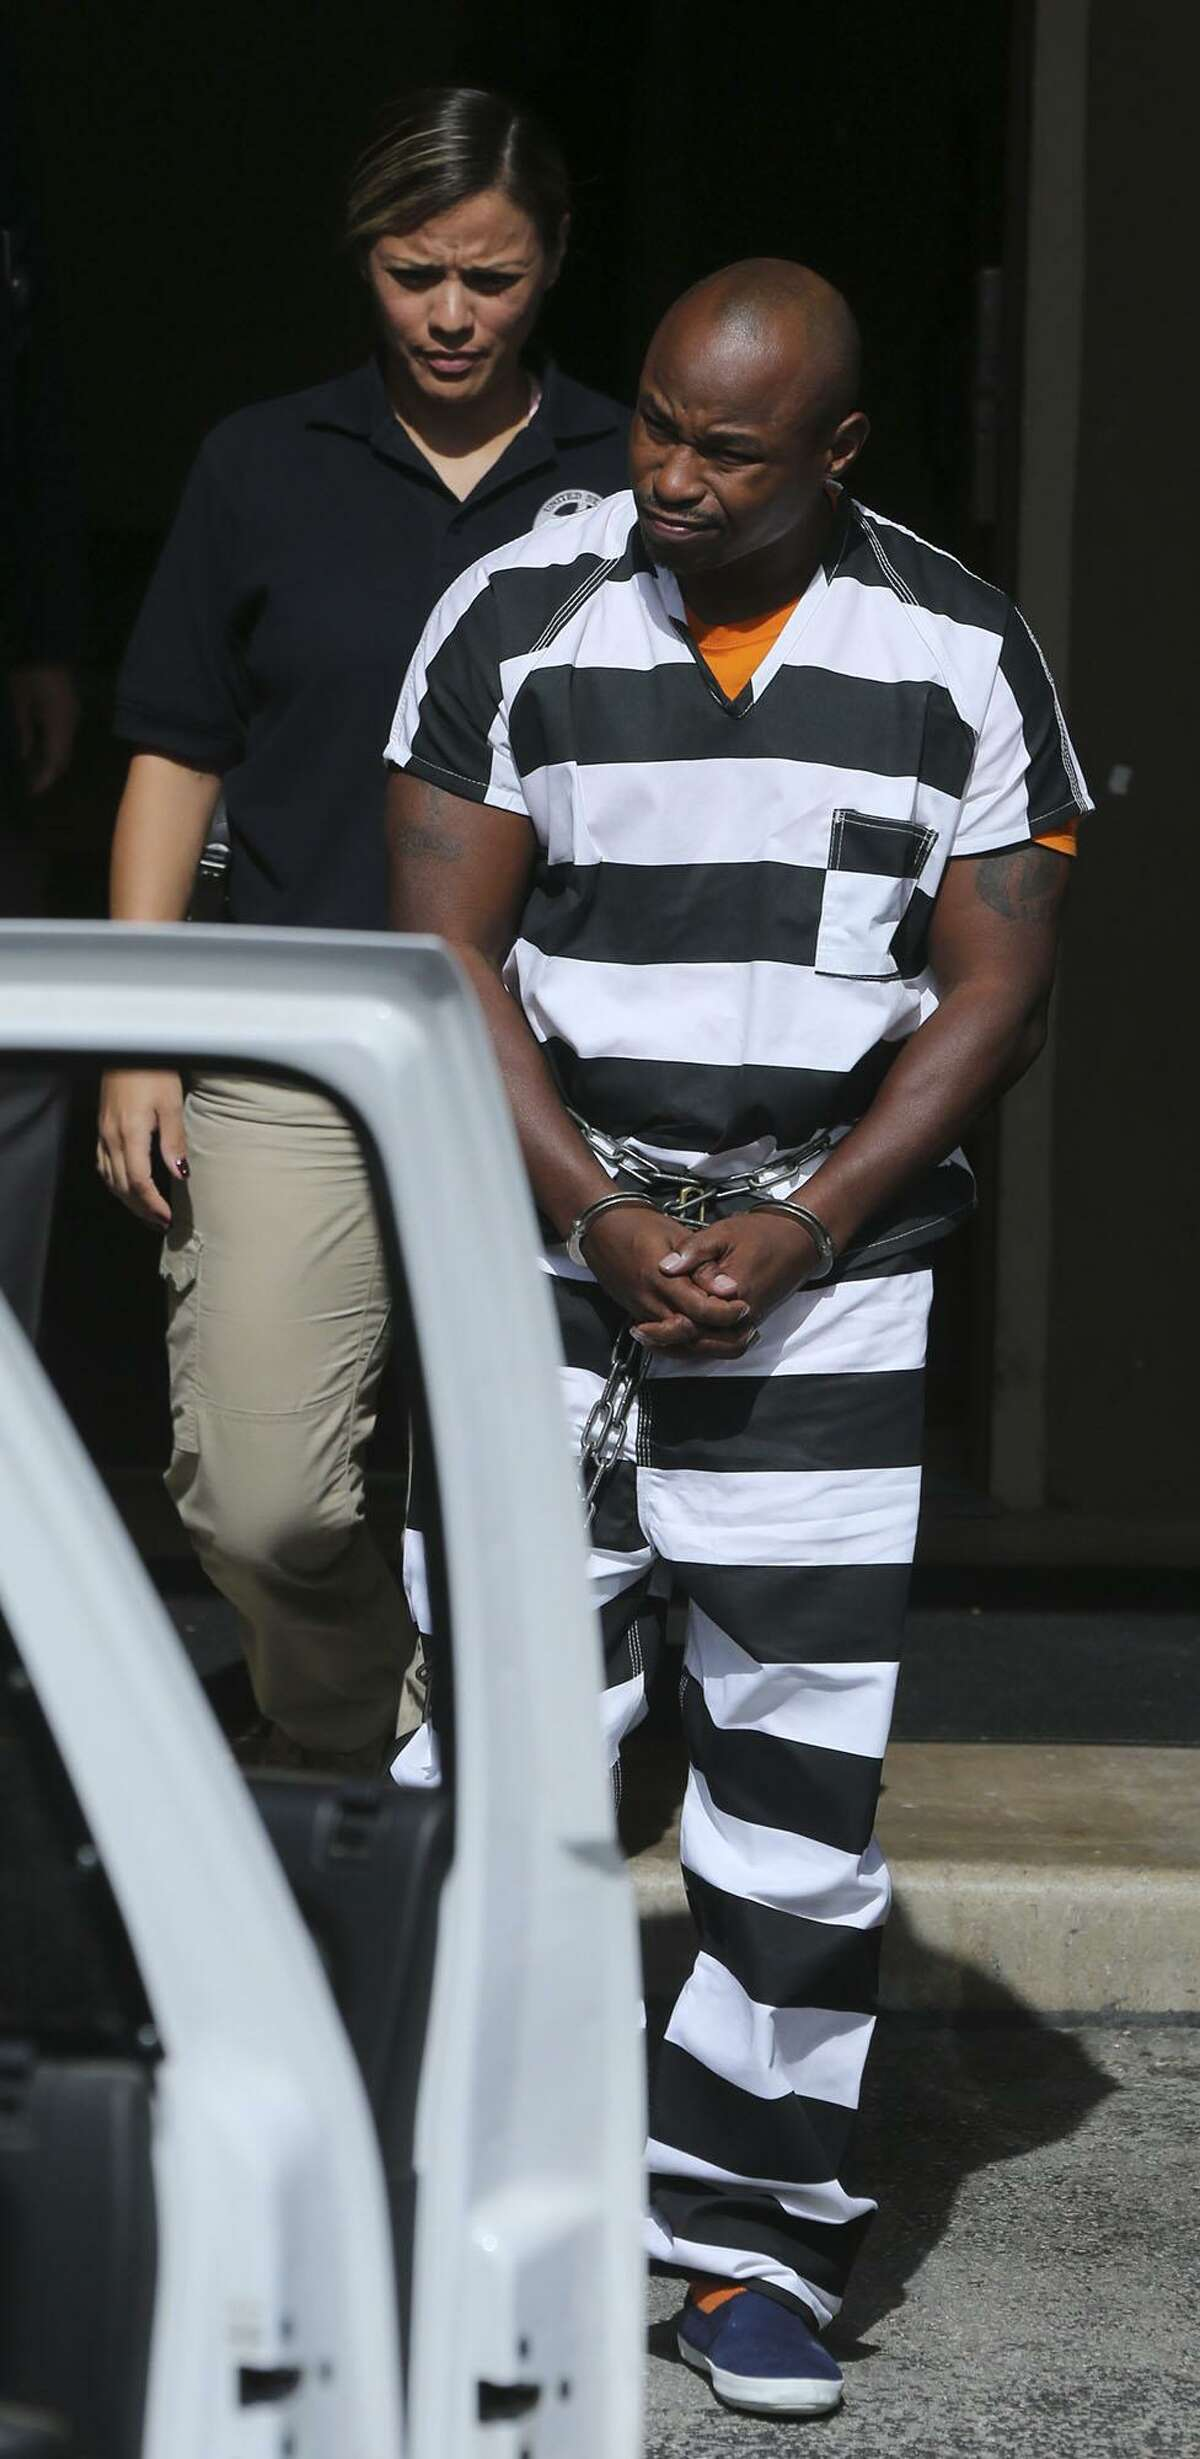 Army Sgt. 1st Class Maliek Kearney,35, is walked to an SUV Tuesday October 18, 2016 at the John H. Wood, Jr. Federal Courthouse after being denied bail. Kearney is fighting a charge that he traveled interstate to kill his wife in Maryland last year.